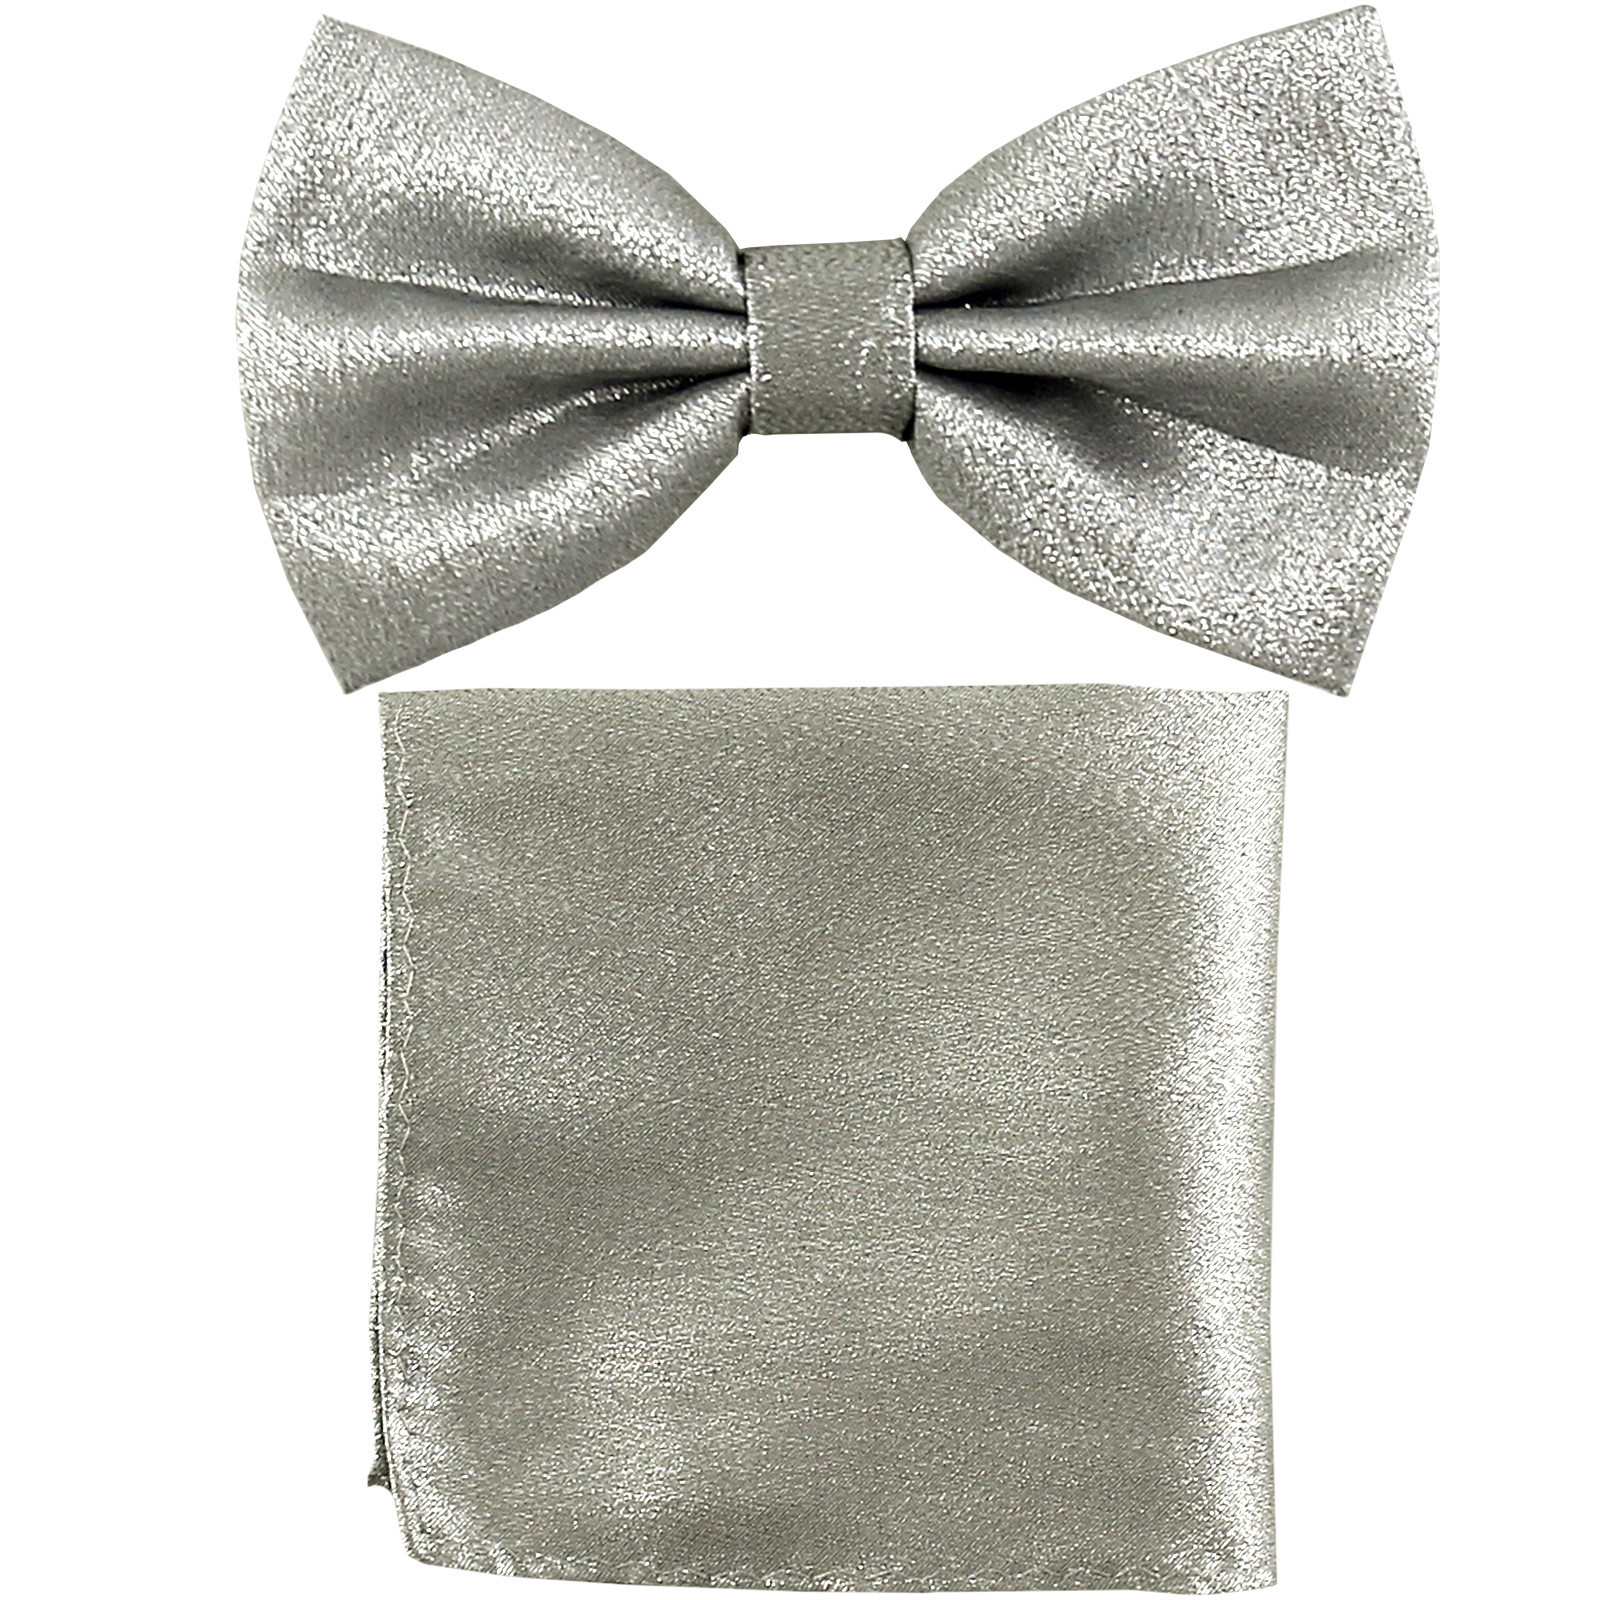 New Men's Glitter Pre-tied Bow Tie Bowtie Pocket Square Hanky Set  Silver